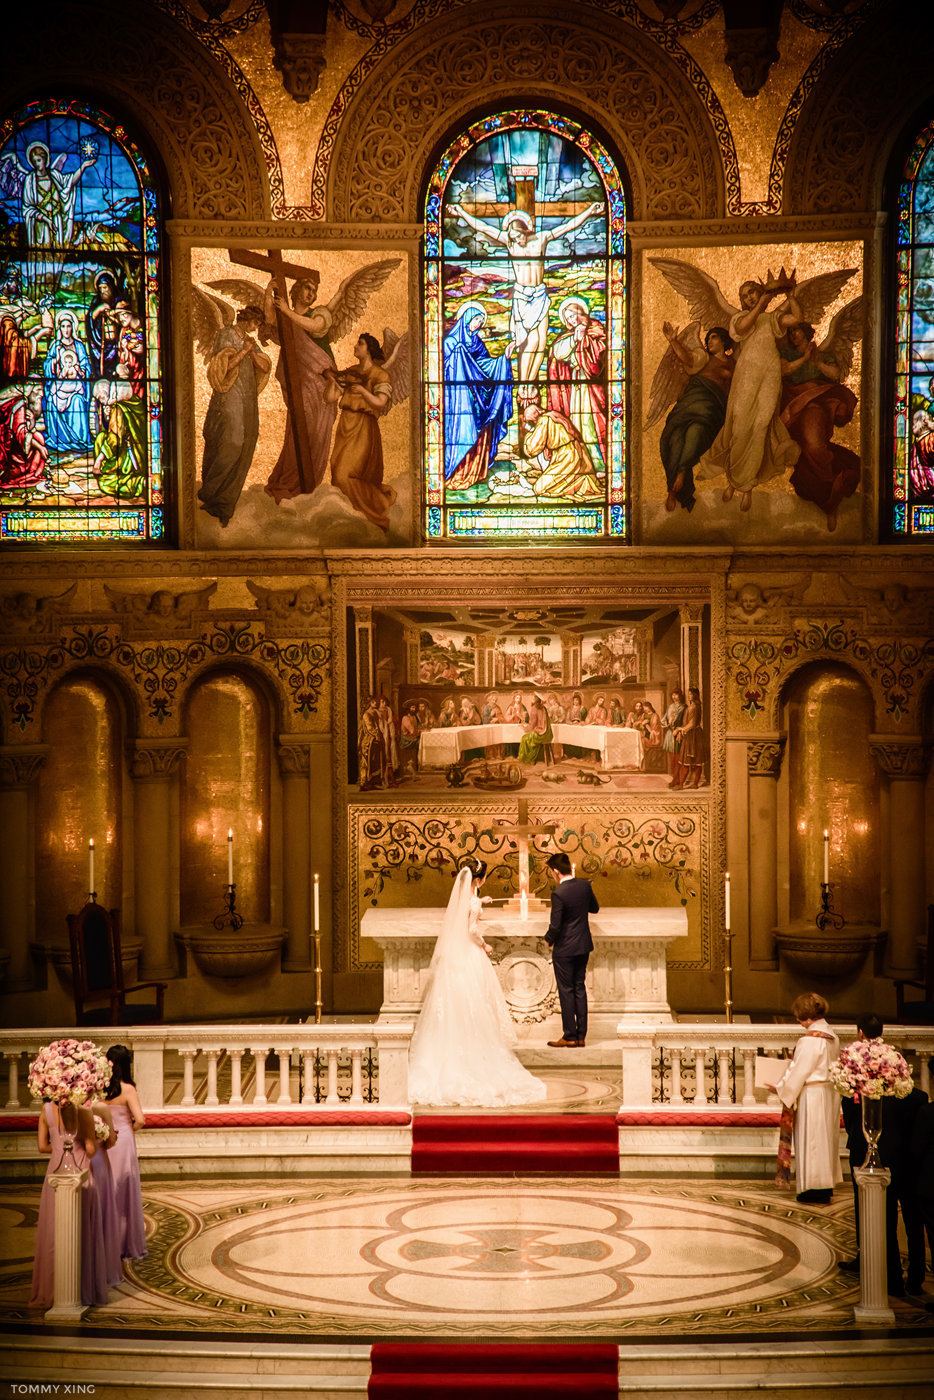 stanford memorial church wedding 旧金山湾区斯坦福教堂婚礼 Tommy Xing Photography 075.jpg